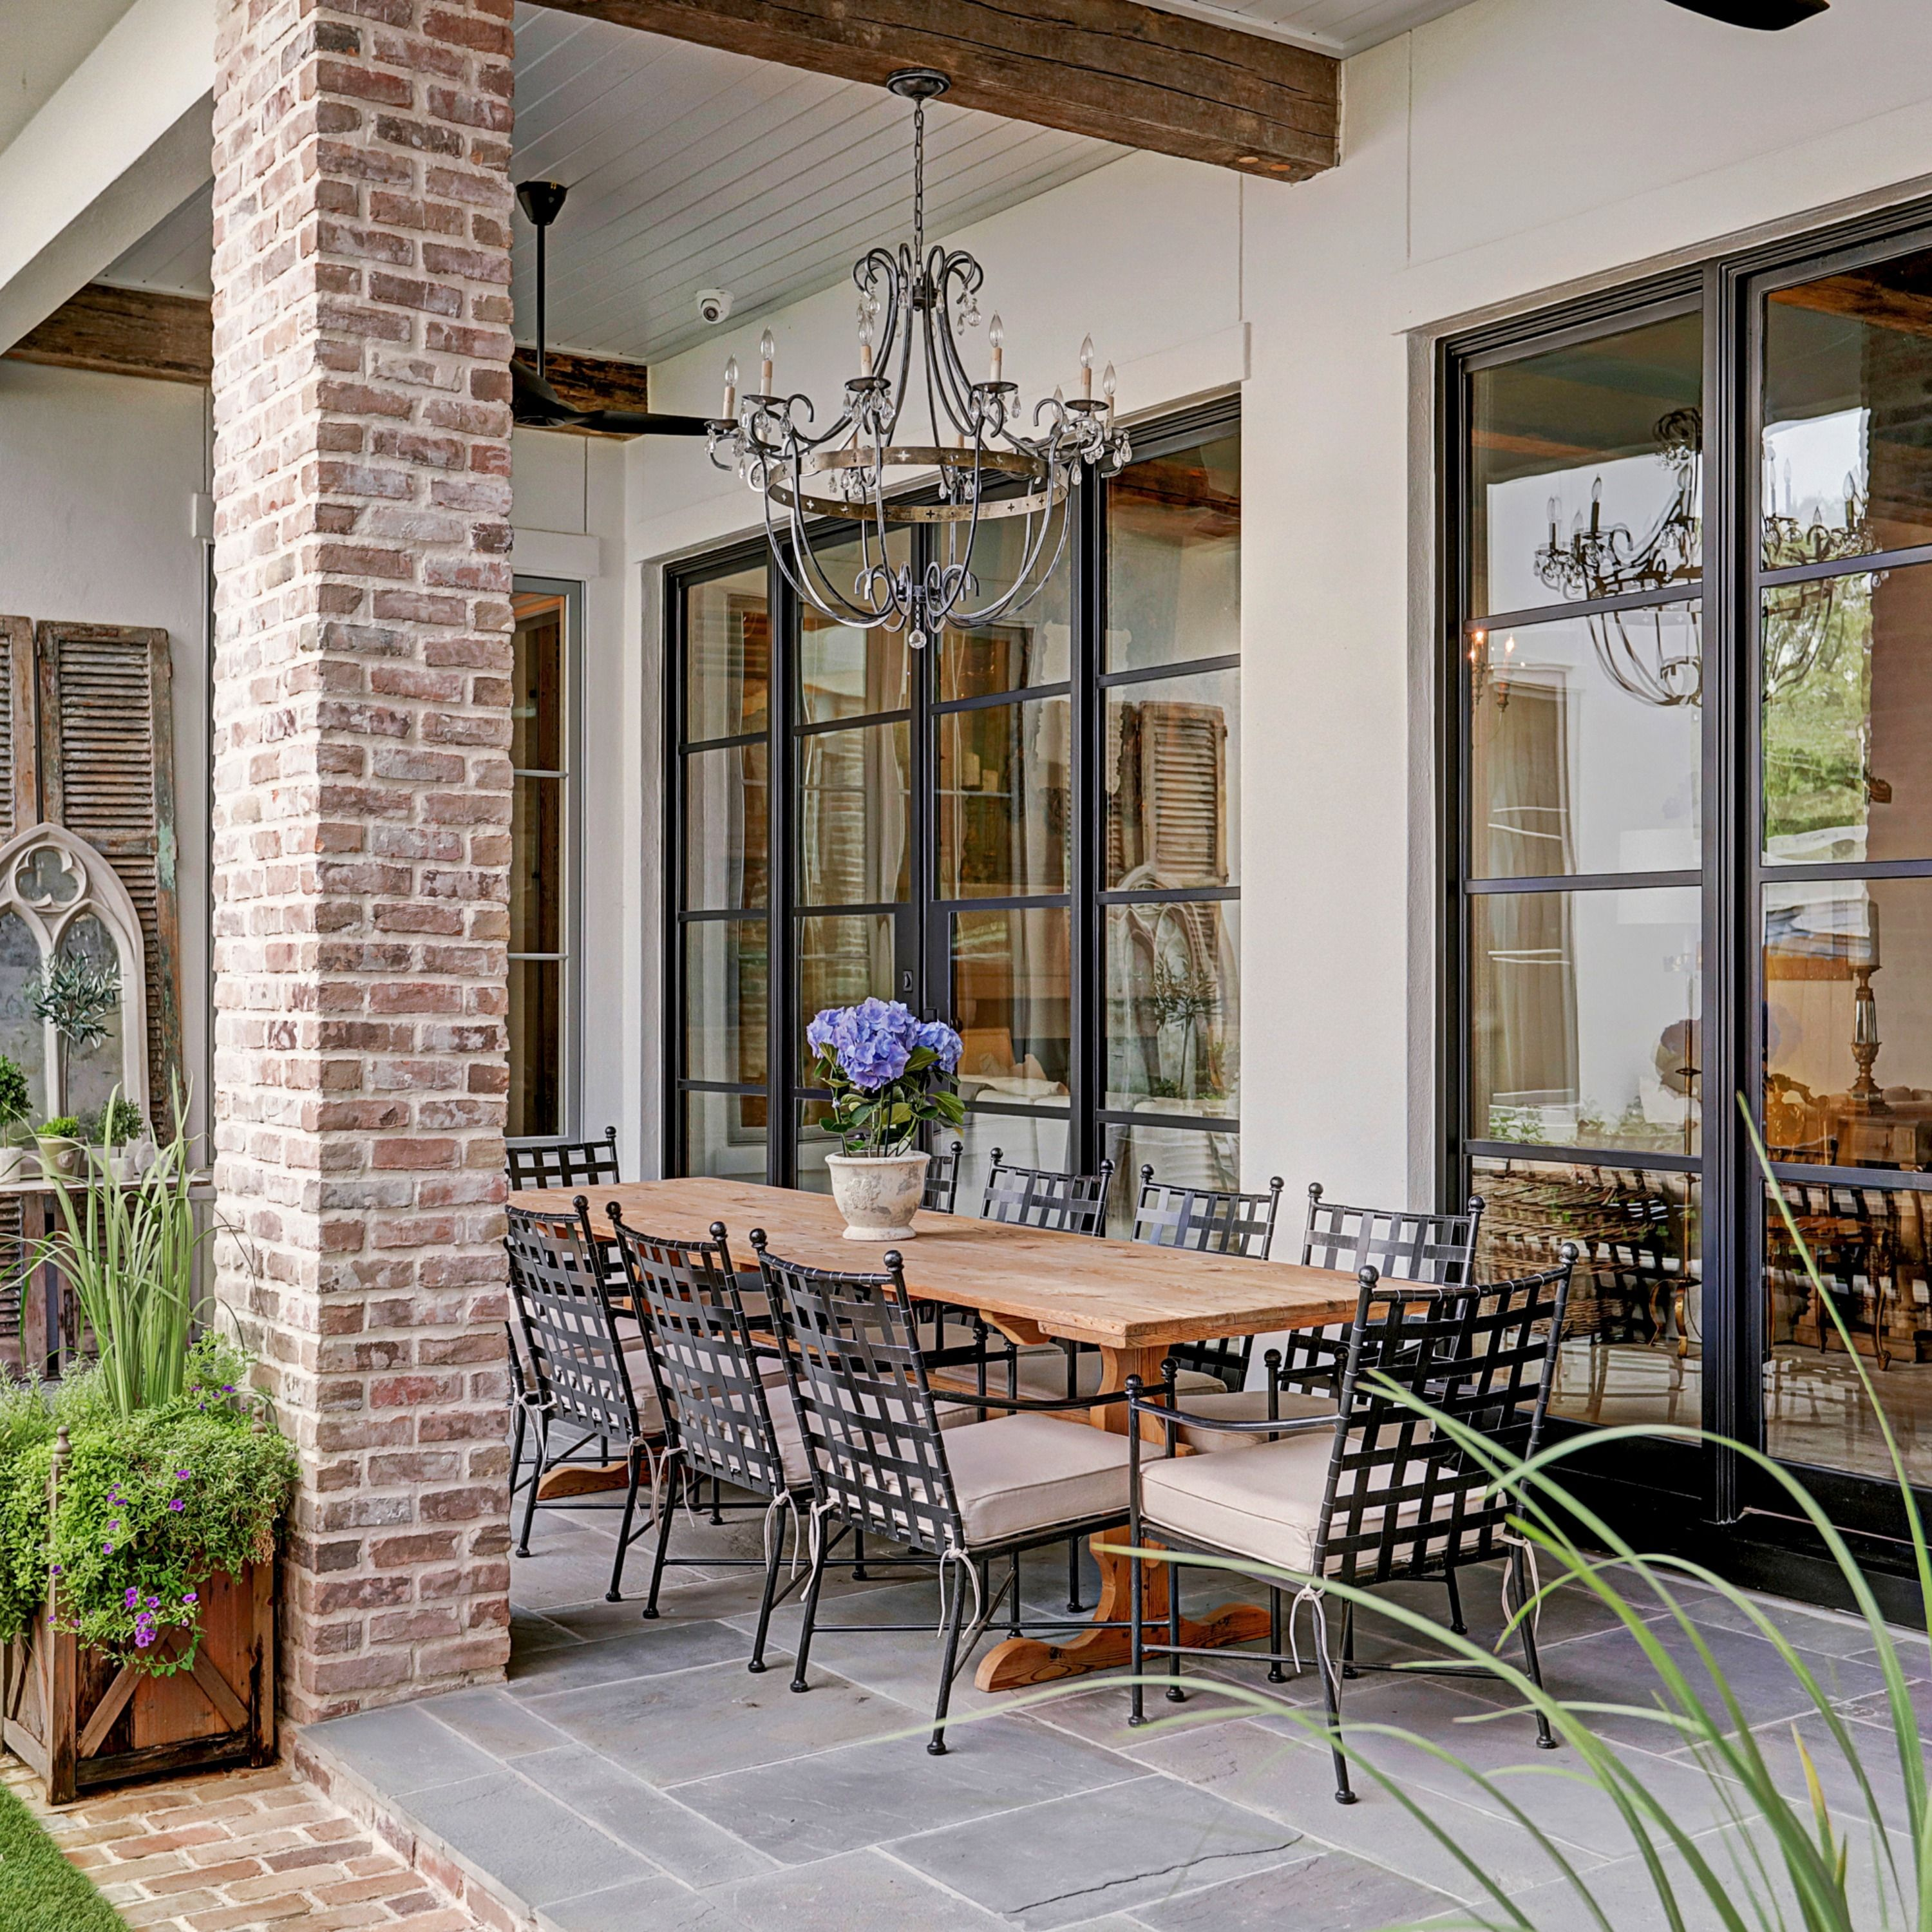 Outside views from dining spaces both inside and out are ... on Living Spaces Outdoor Dining id=21625